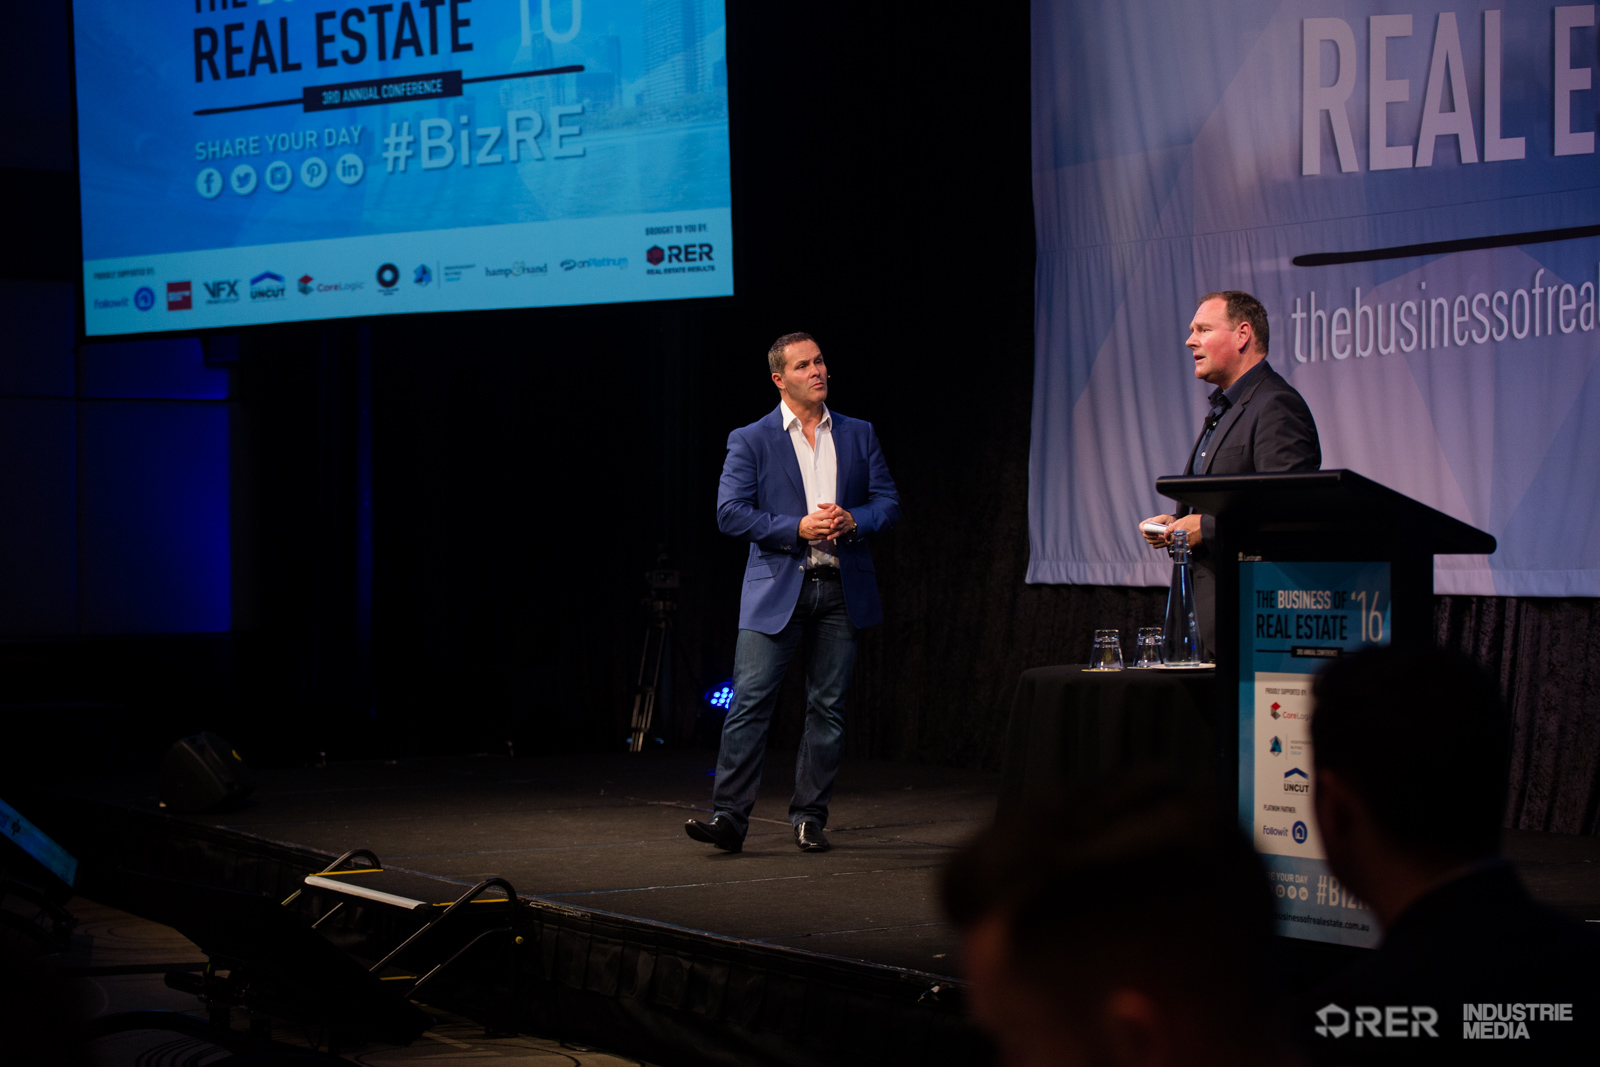 https://www.thebusinessofrealestate.com.au/wp-content/uploads/2016/09/RER_BUSINESS_OF_REAL_ESTATE_DAY_2-35.jpg